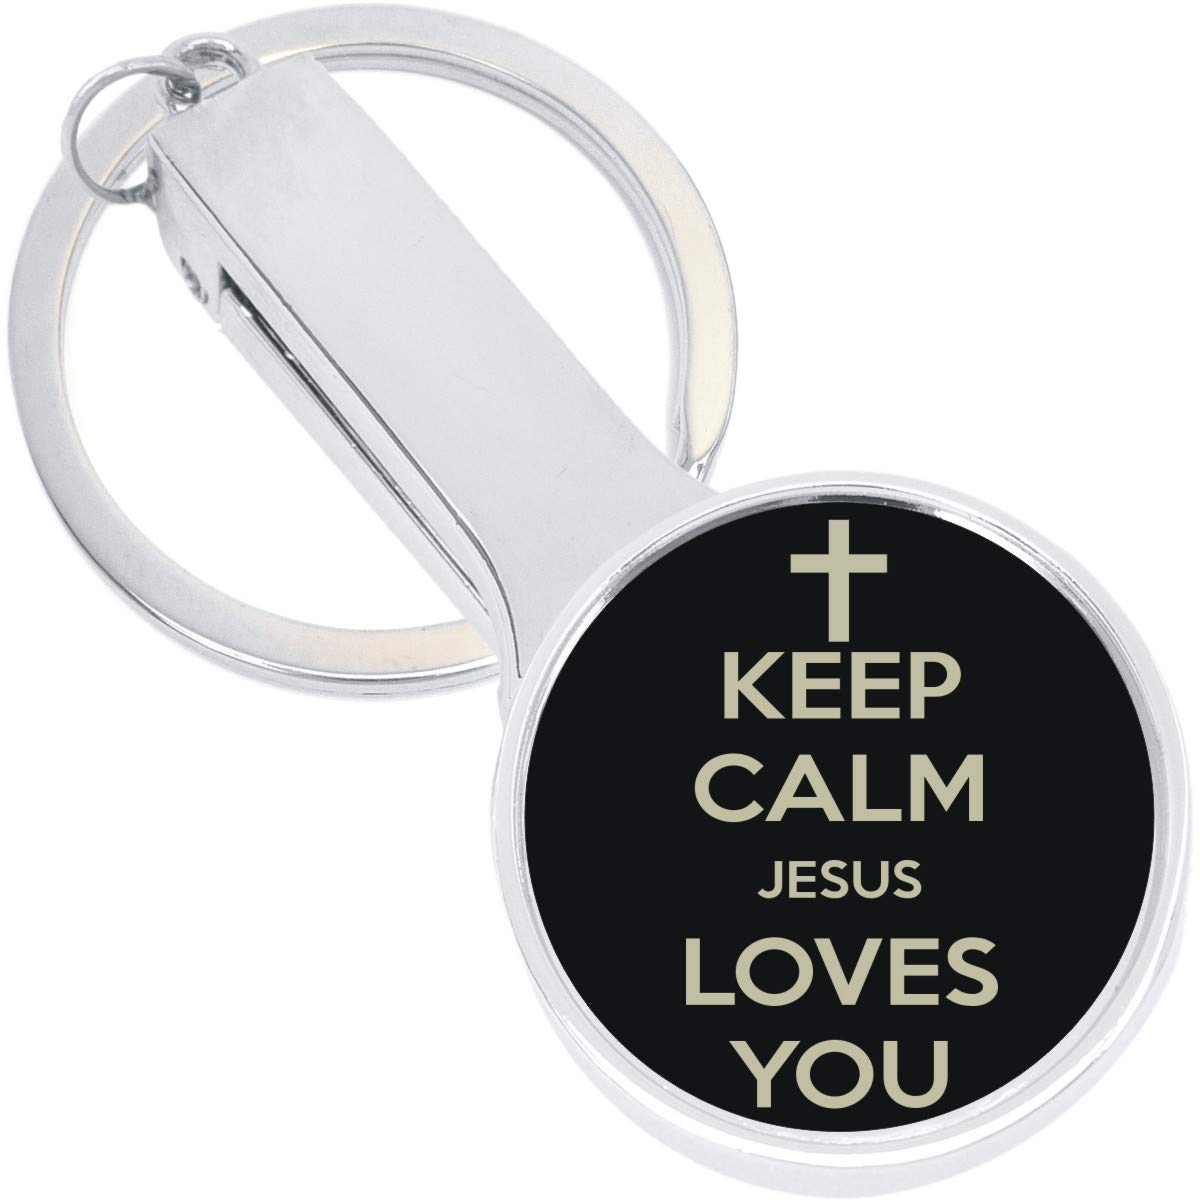 Keep Calm Jesus Loves You Purse Hanger with Keychain